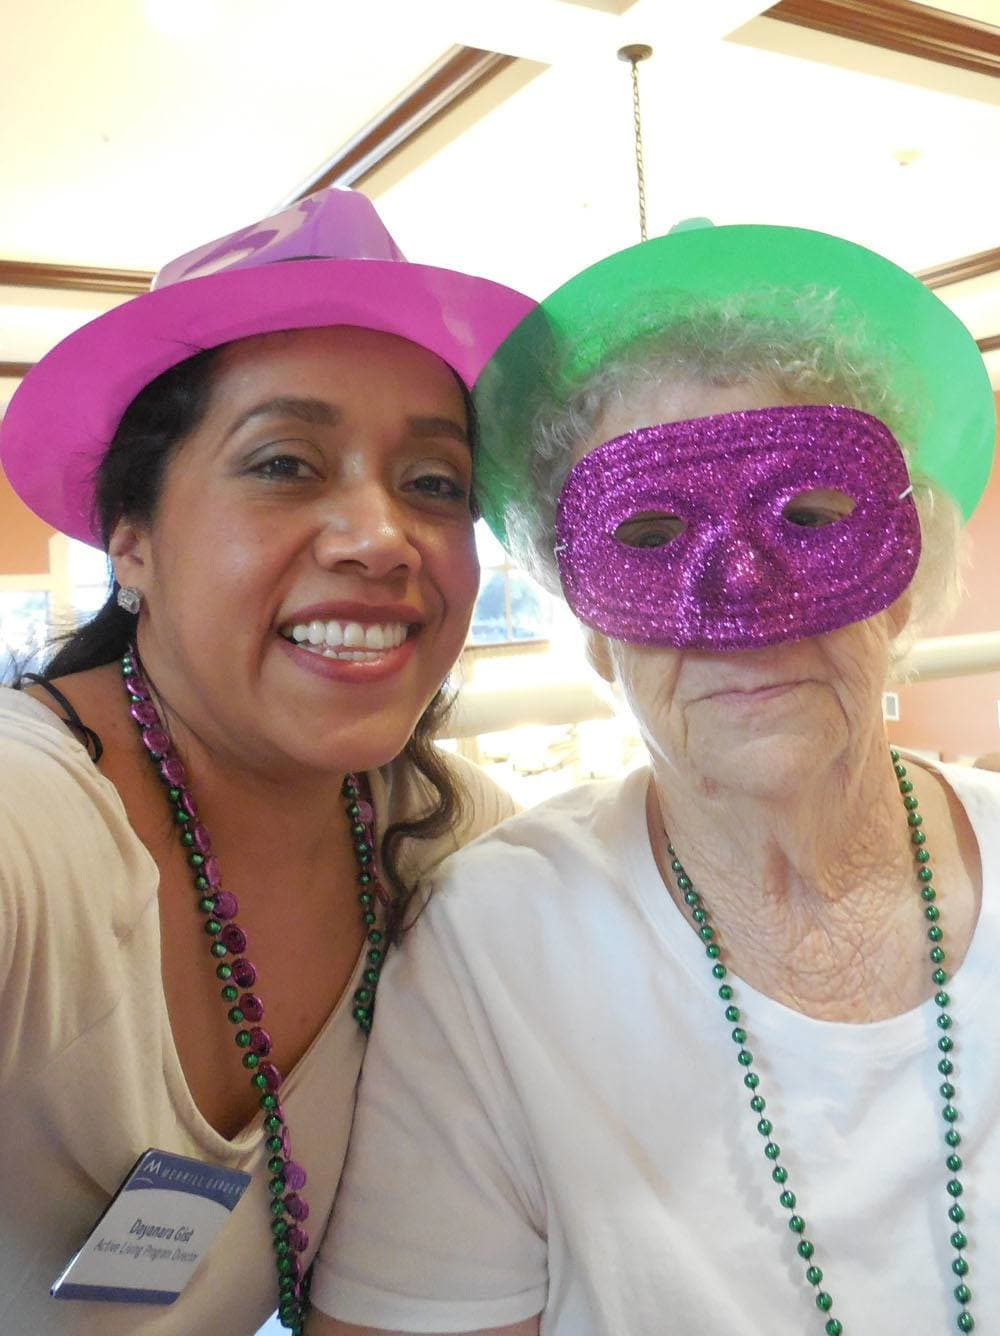 Mardi Gras at The Groves, A Merrill Gardens Community